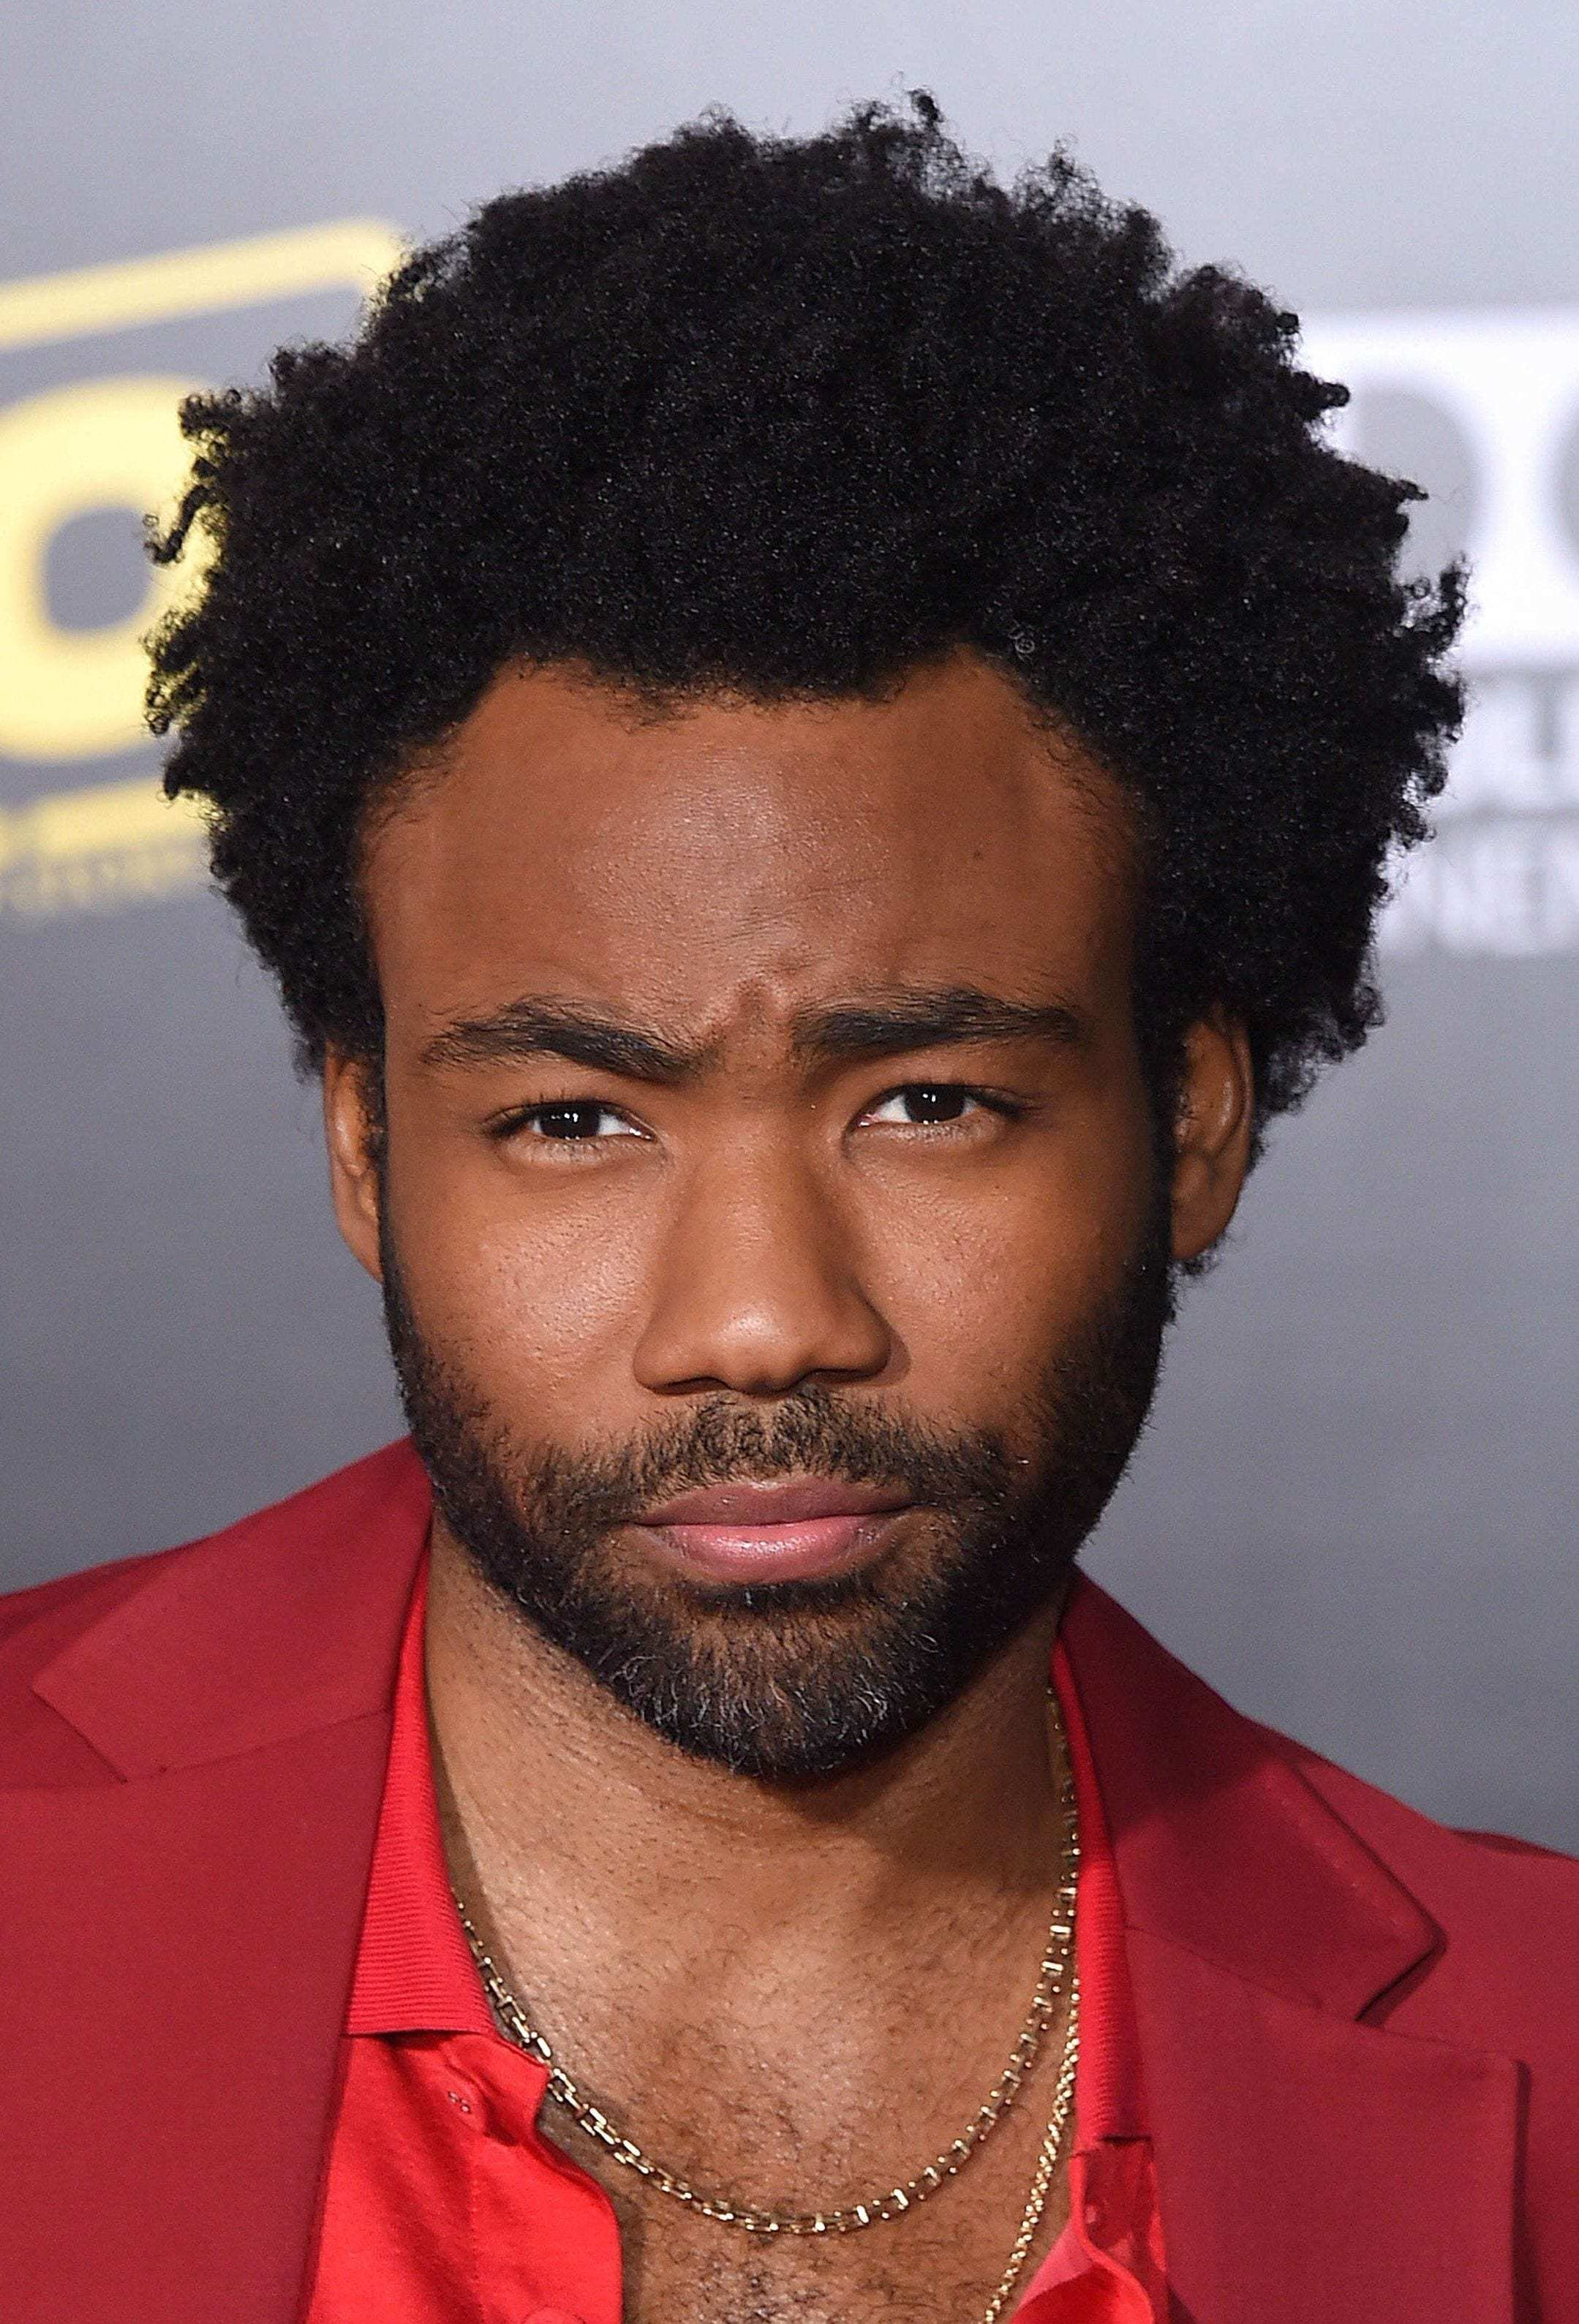 The Best Top Afro Hairstyles For Men In 2019 Visual Guide Pictures